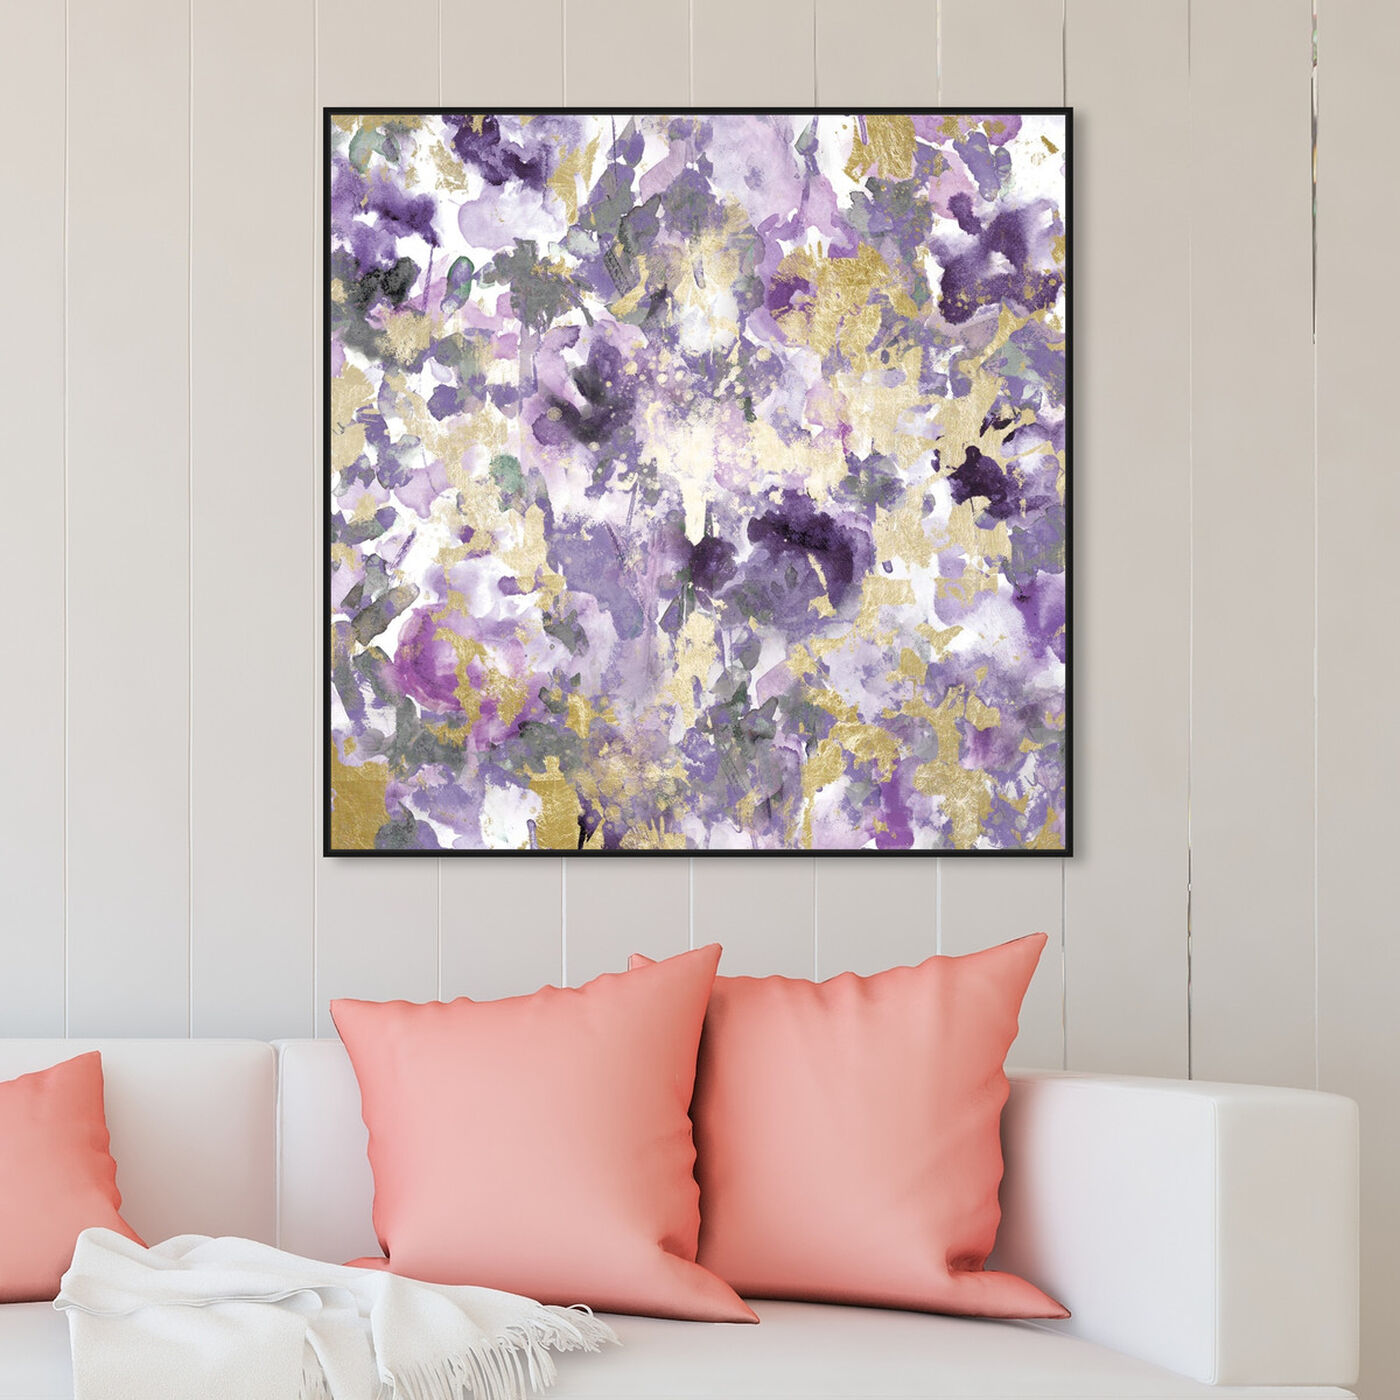 Hanging view of Wilderness Amethyst featuring abstract and paint art.